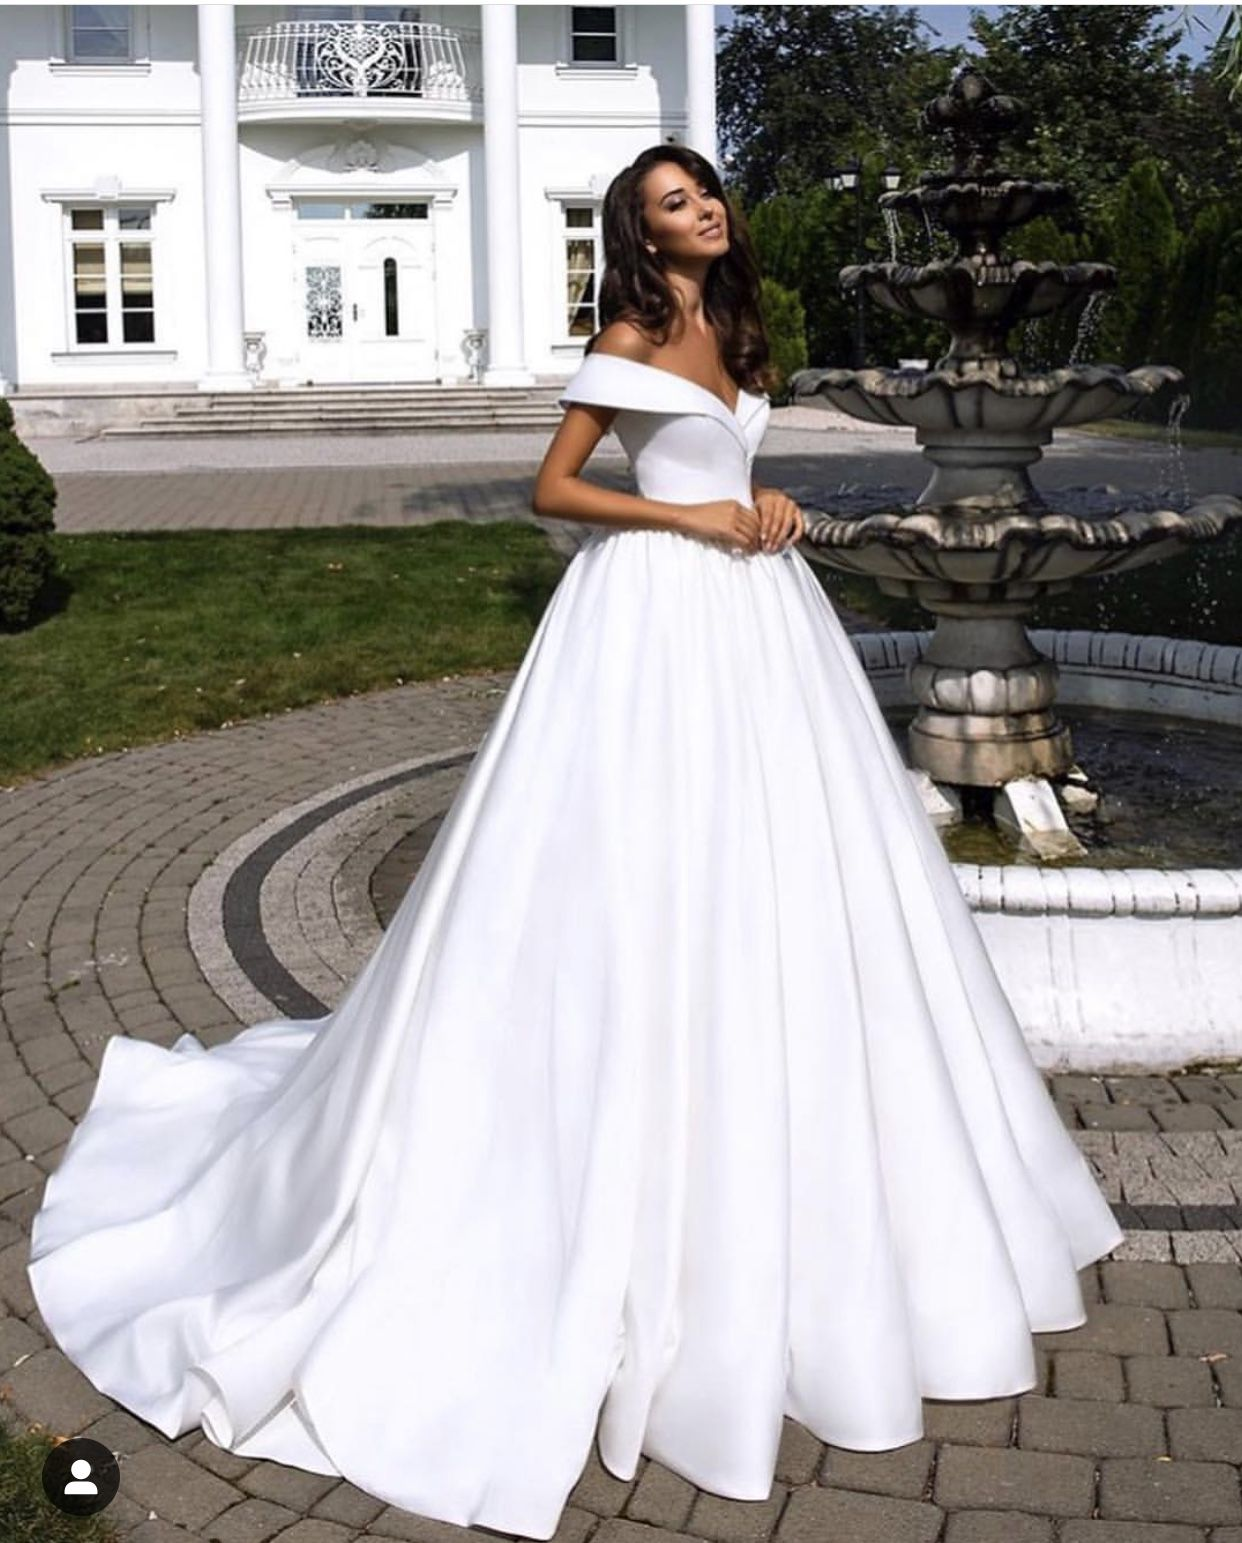 Pin By Sarina Weigand On Wedding Ball Gowns Wedding Ball Gown Wedding Dress Bridal Dresses